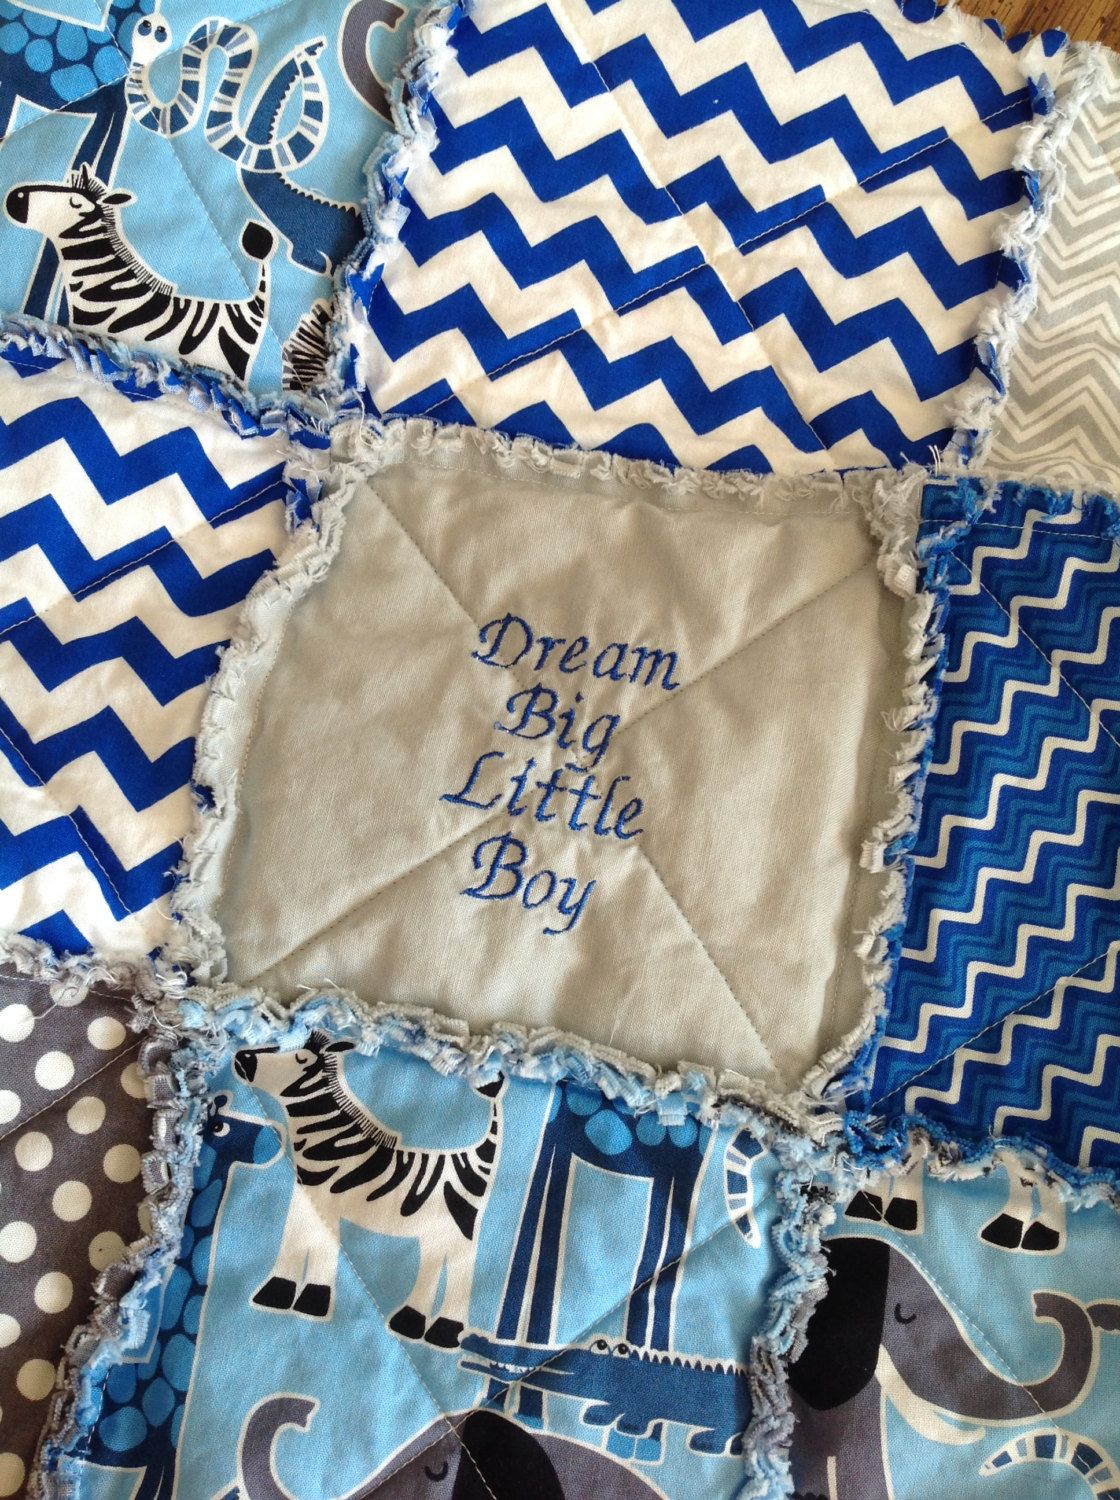 Dream Big Little Boy Embroidered Baby Rag Quilt Homemade Baby Boy ... : handmade baby boy quilts - Adamdwight.com